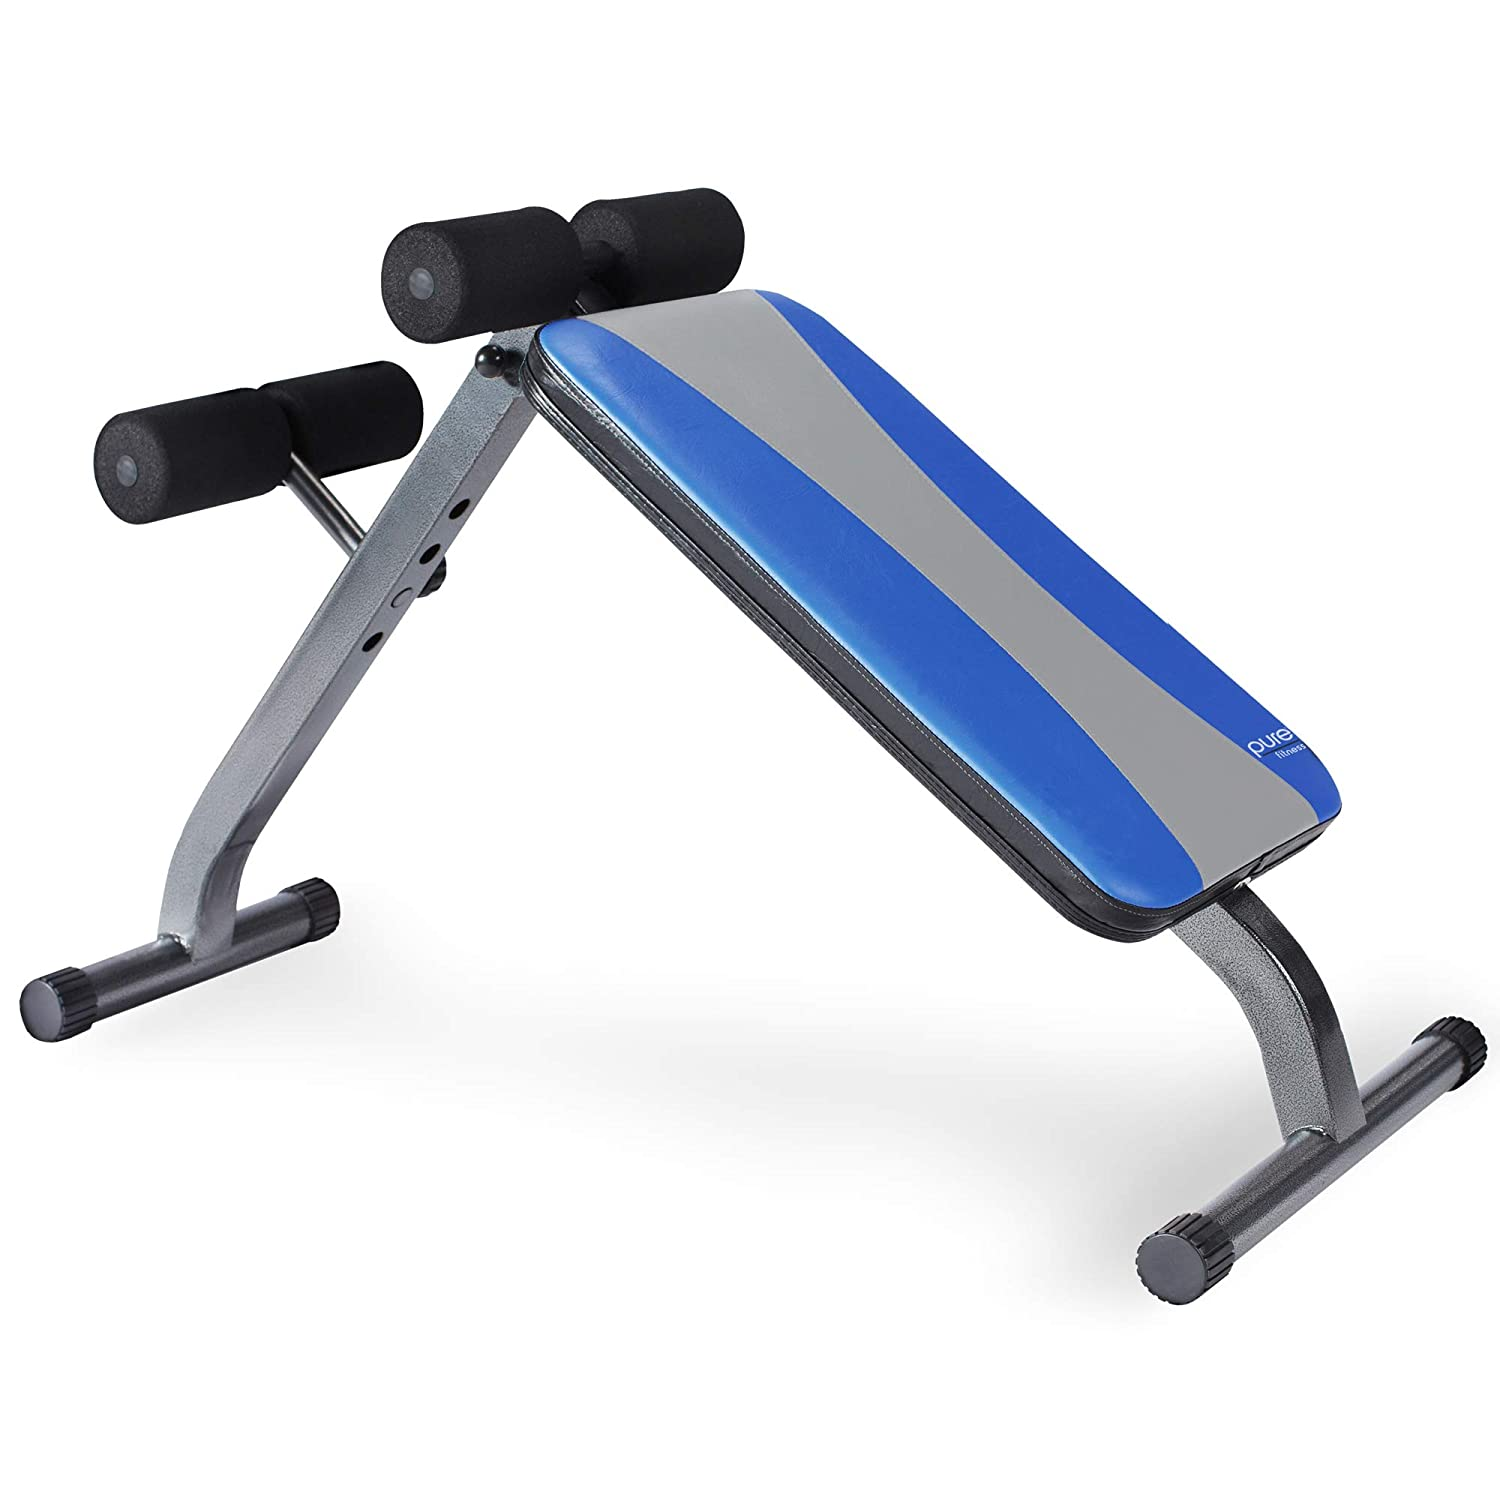 Pure Fitness Weight Training/Workout: Adjustable Ab Crunch/Sit-Up Bench, Blue/Black 8642AB